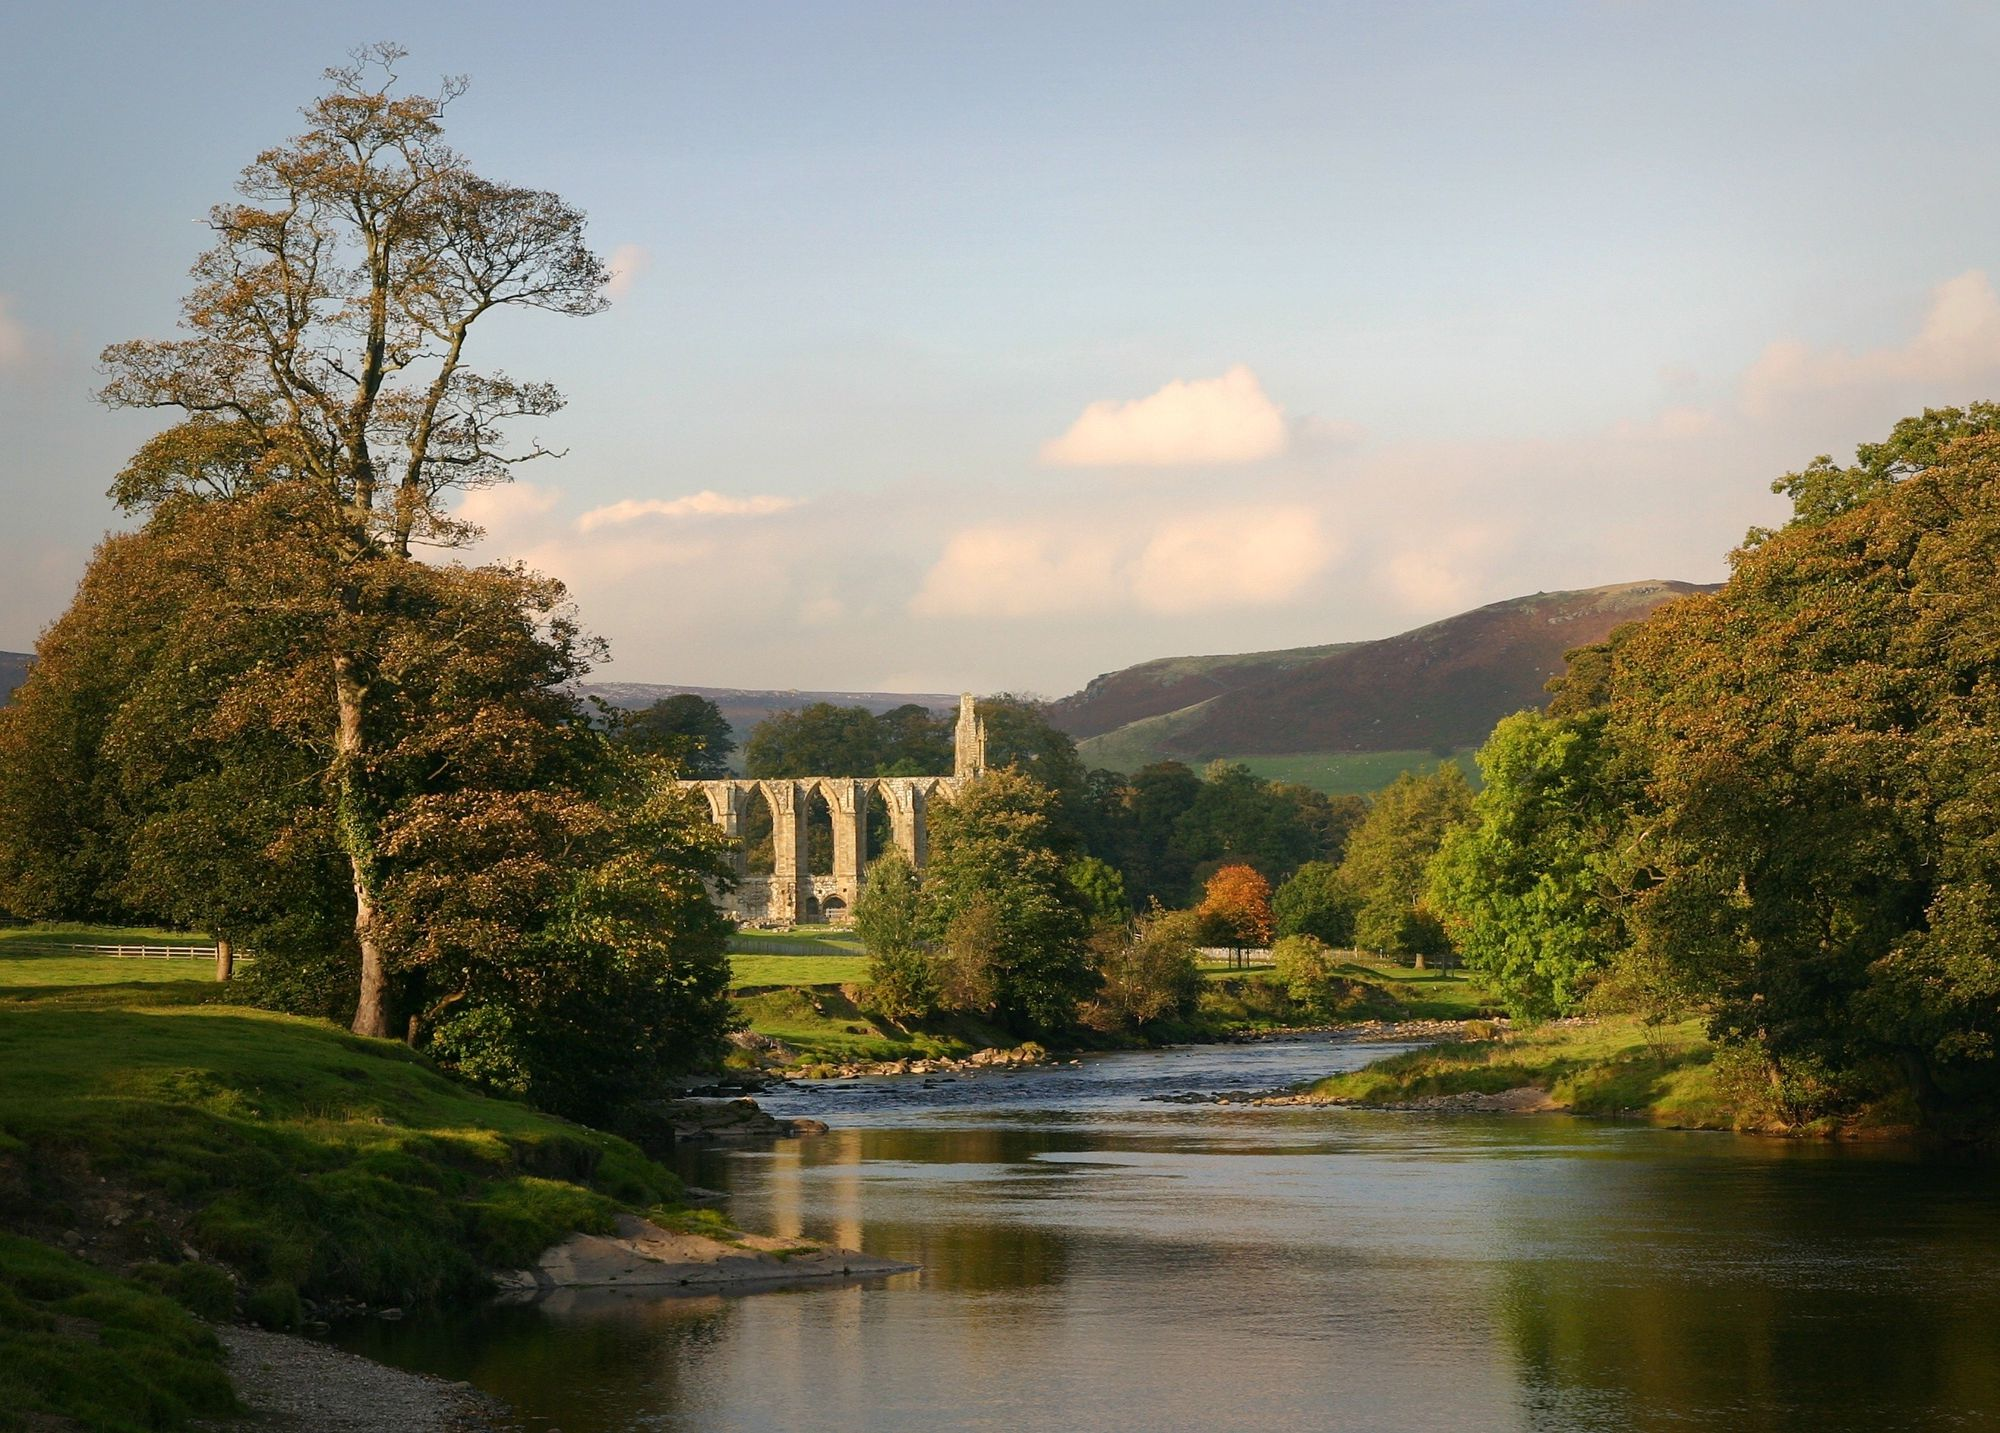 A new campsite on the edge of the Yorkshire Dales and a stone's throw from famous Bolton Abbey